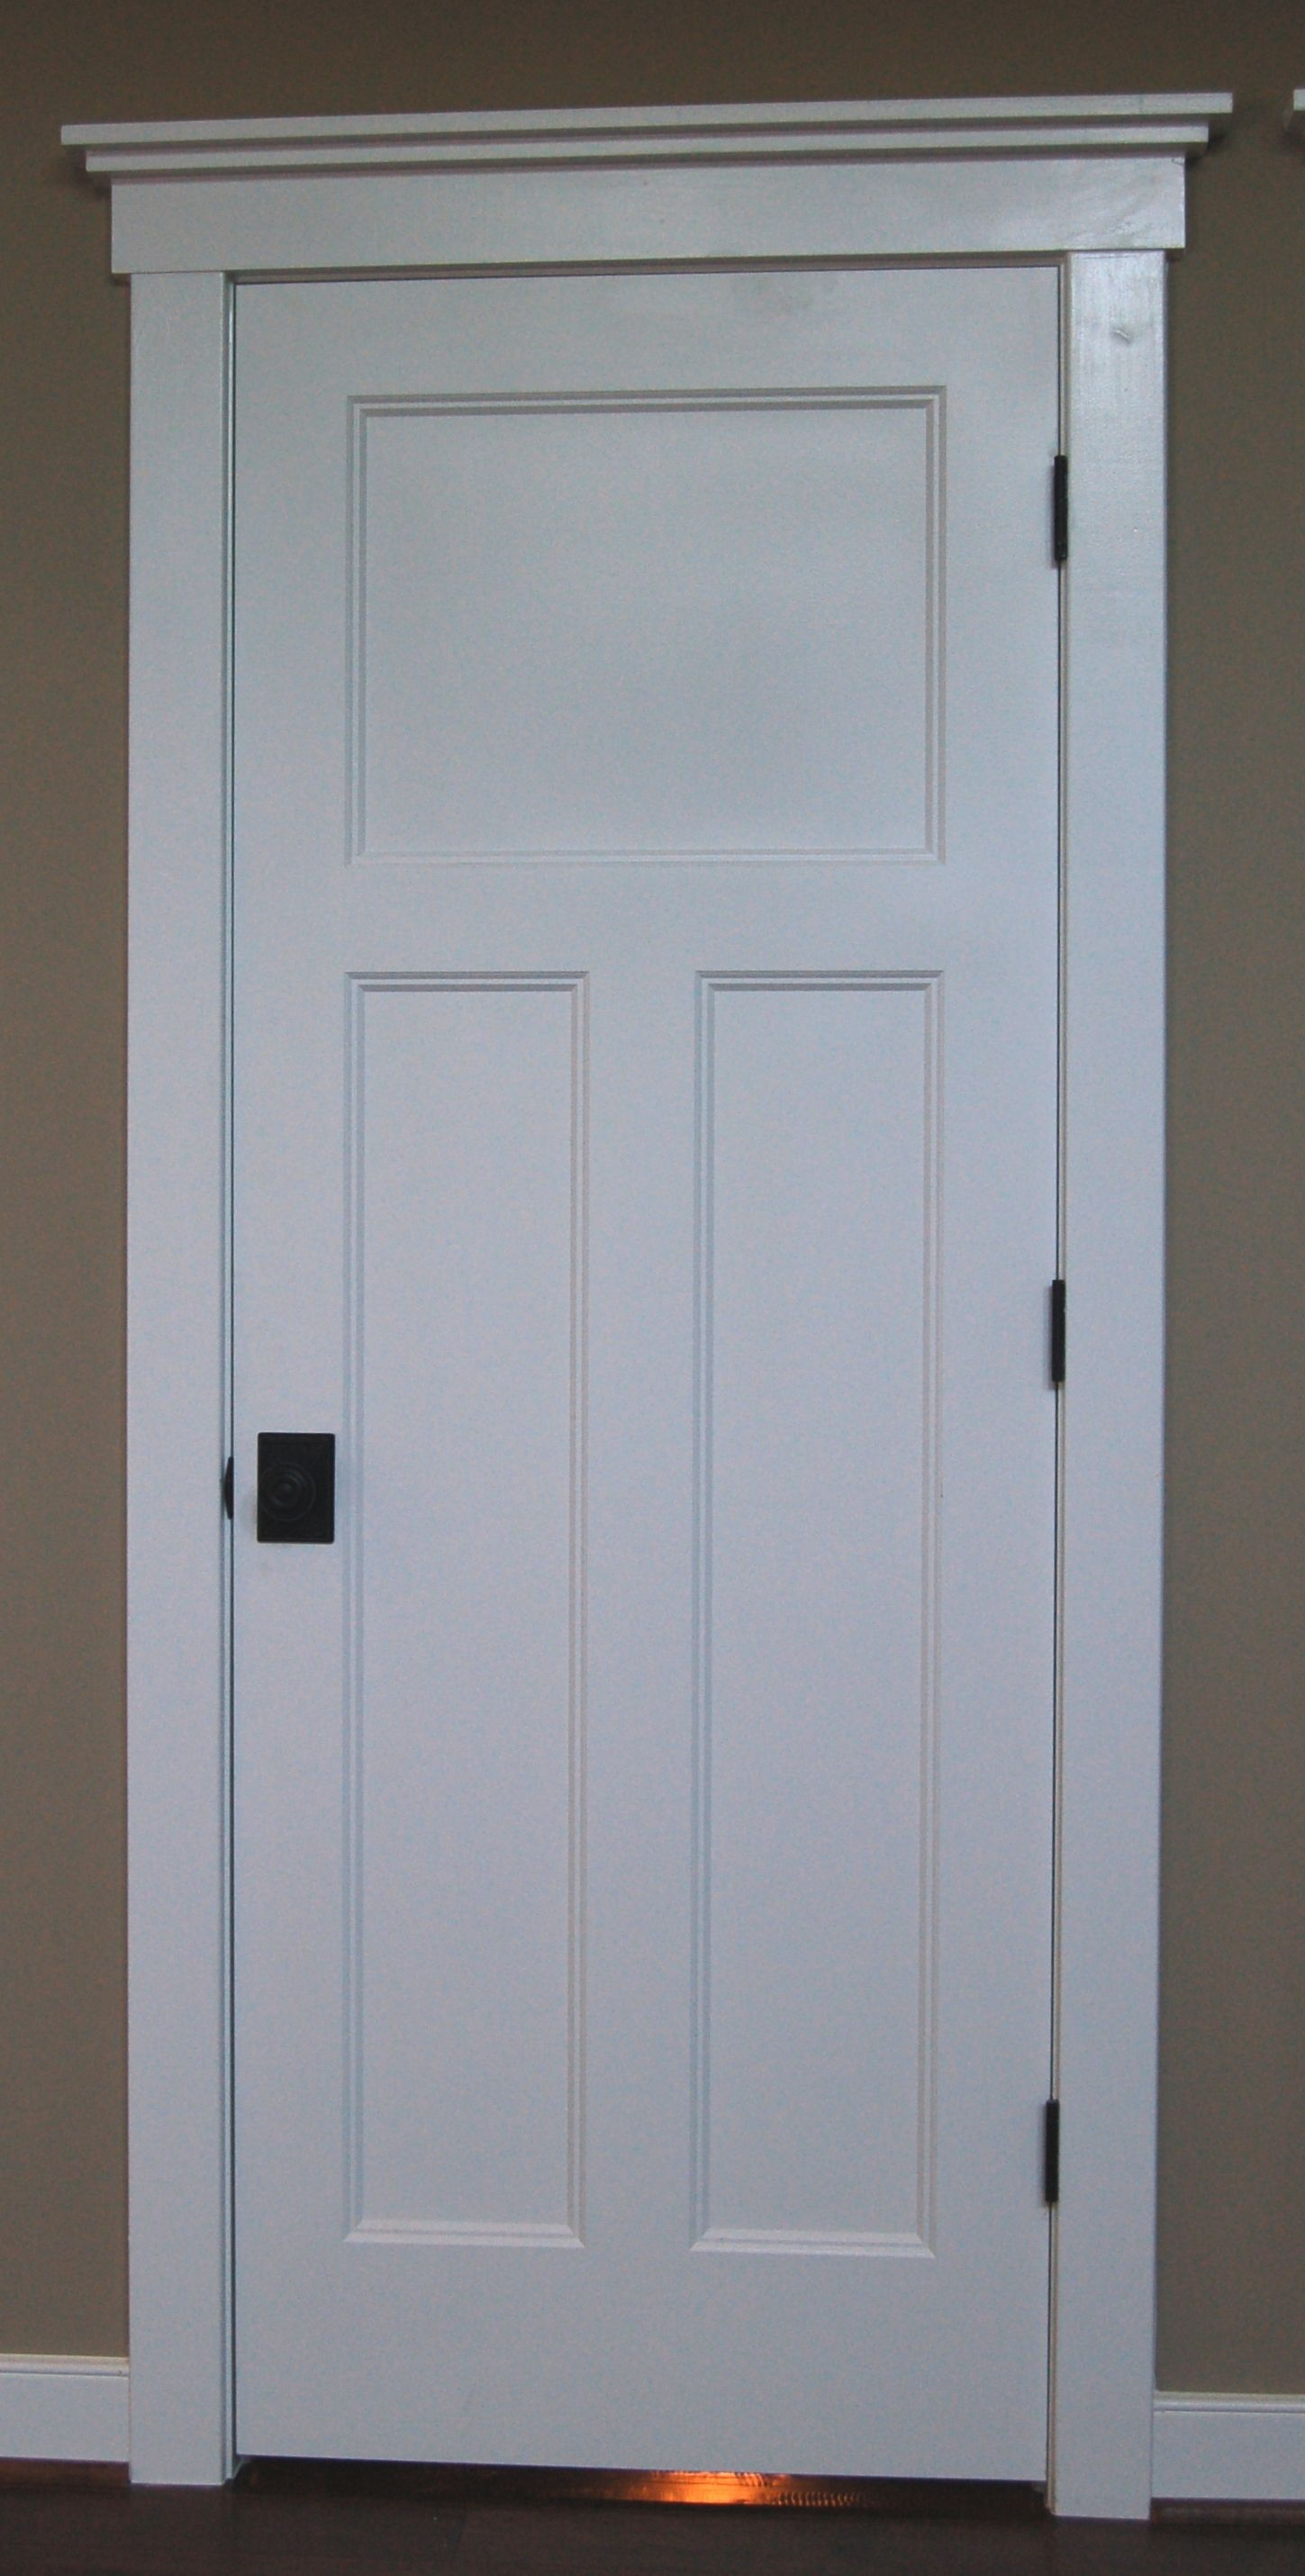 Marvelous interior door trim styles 1 craftsman style interior marvelous interior door trim styles 1 craftsman style interior doors planetlyrics Images